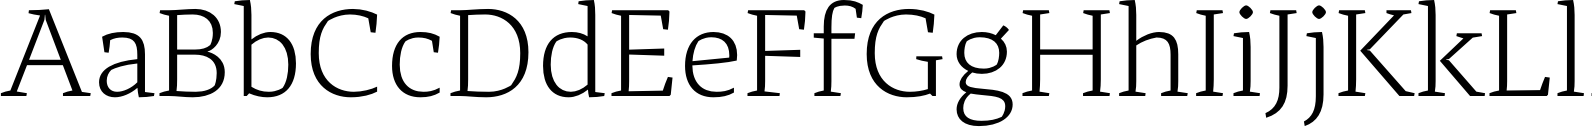 Adagio Serif Light